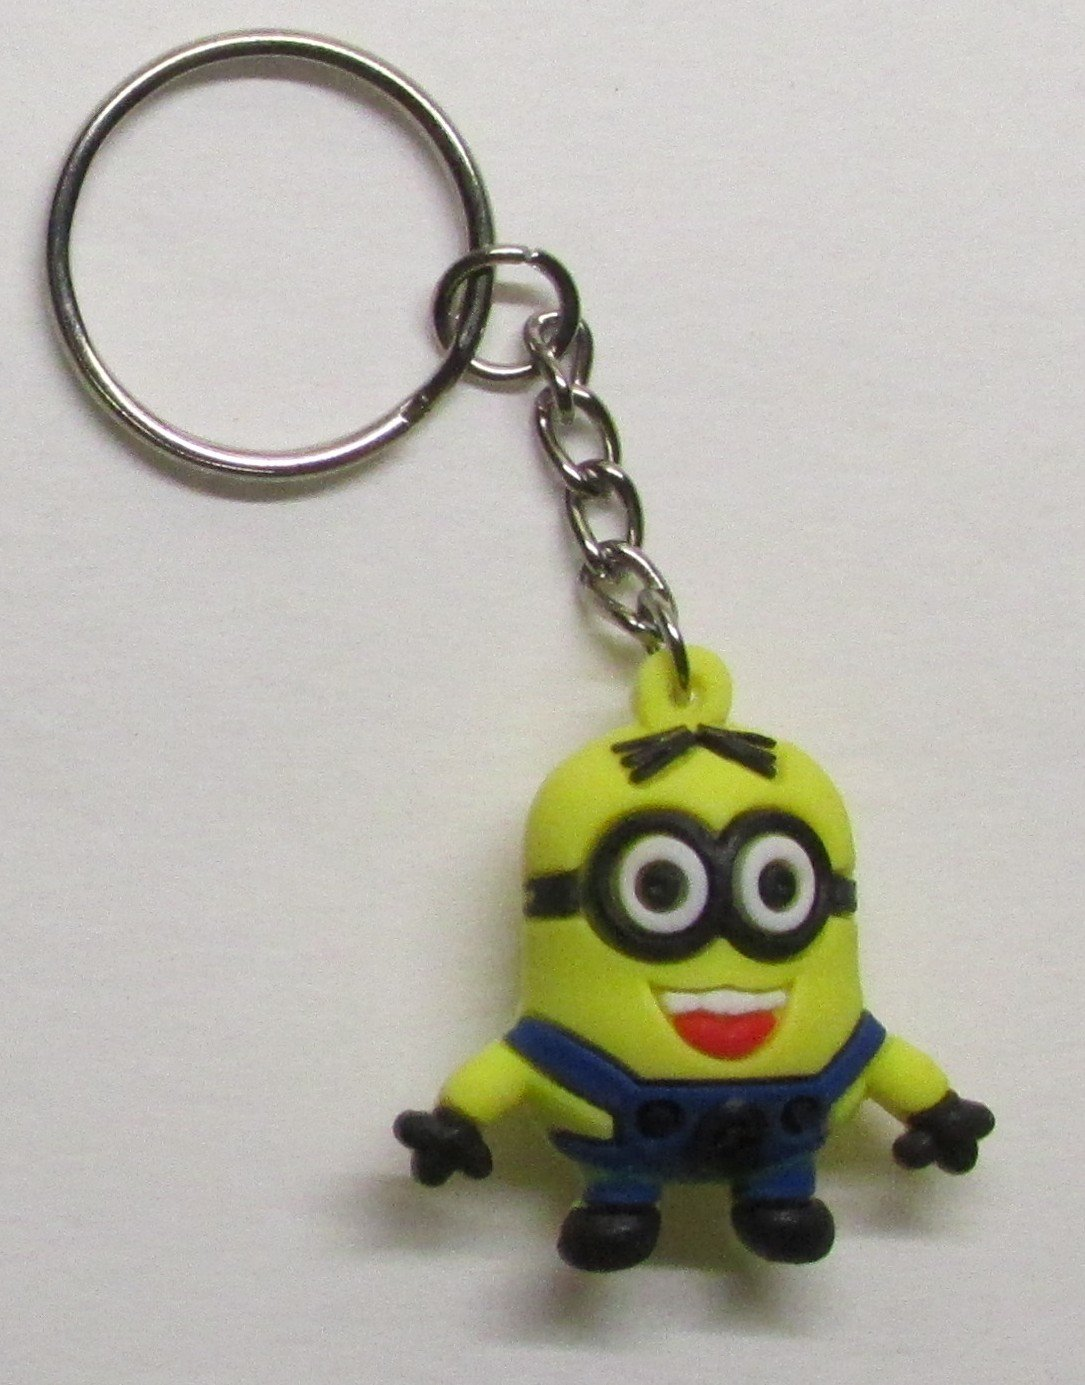 DAVE the MINION Despicable Me Silicone Rubber KEY CHAIN Ring Keychain NEW